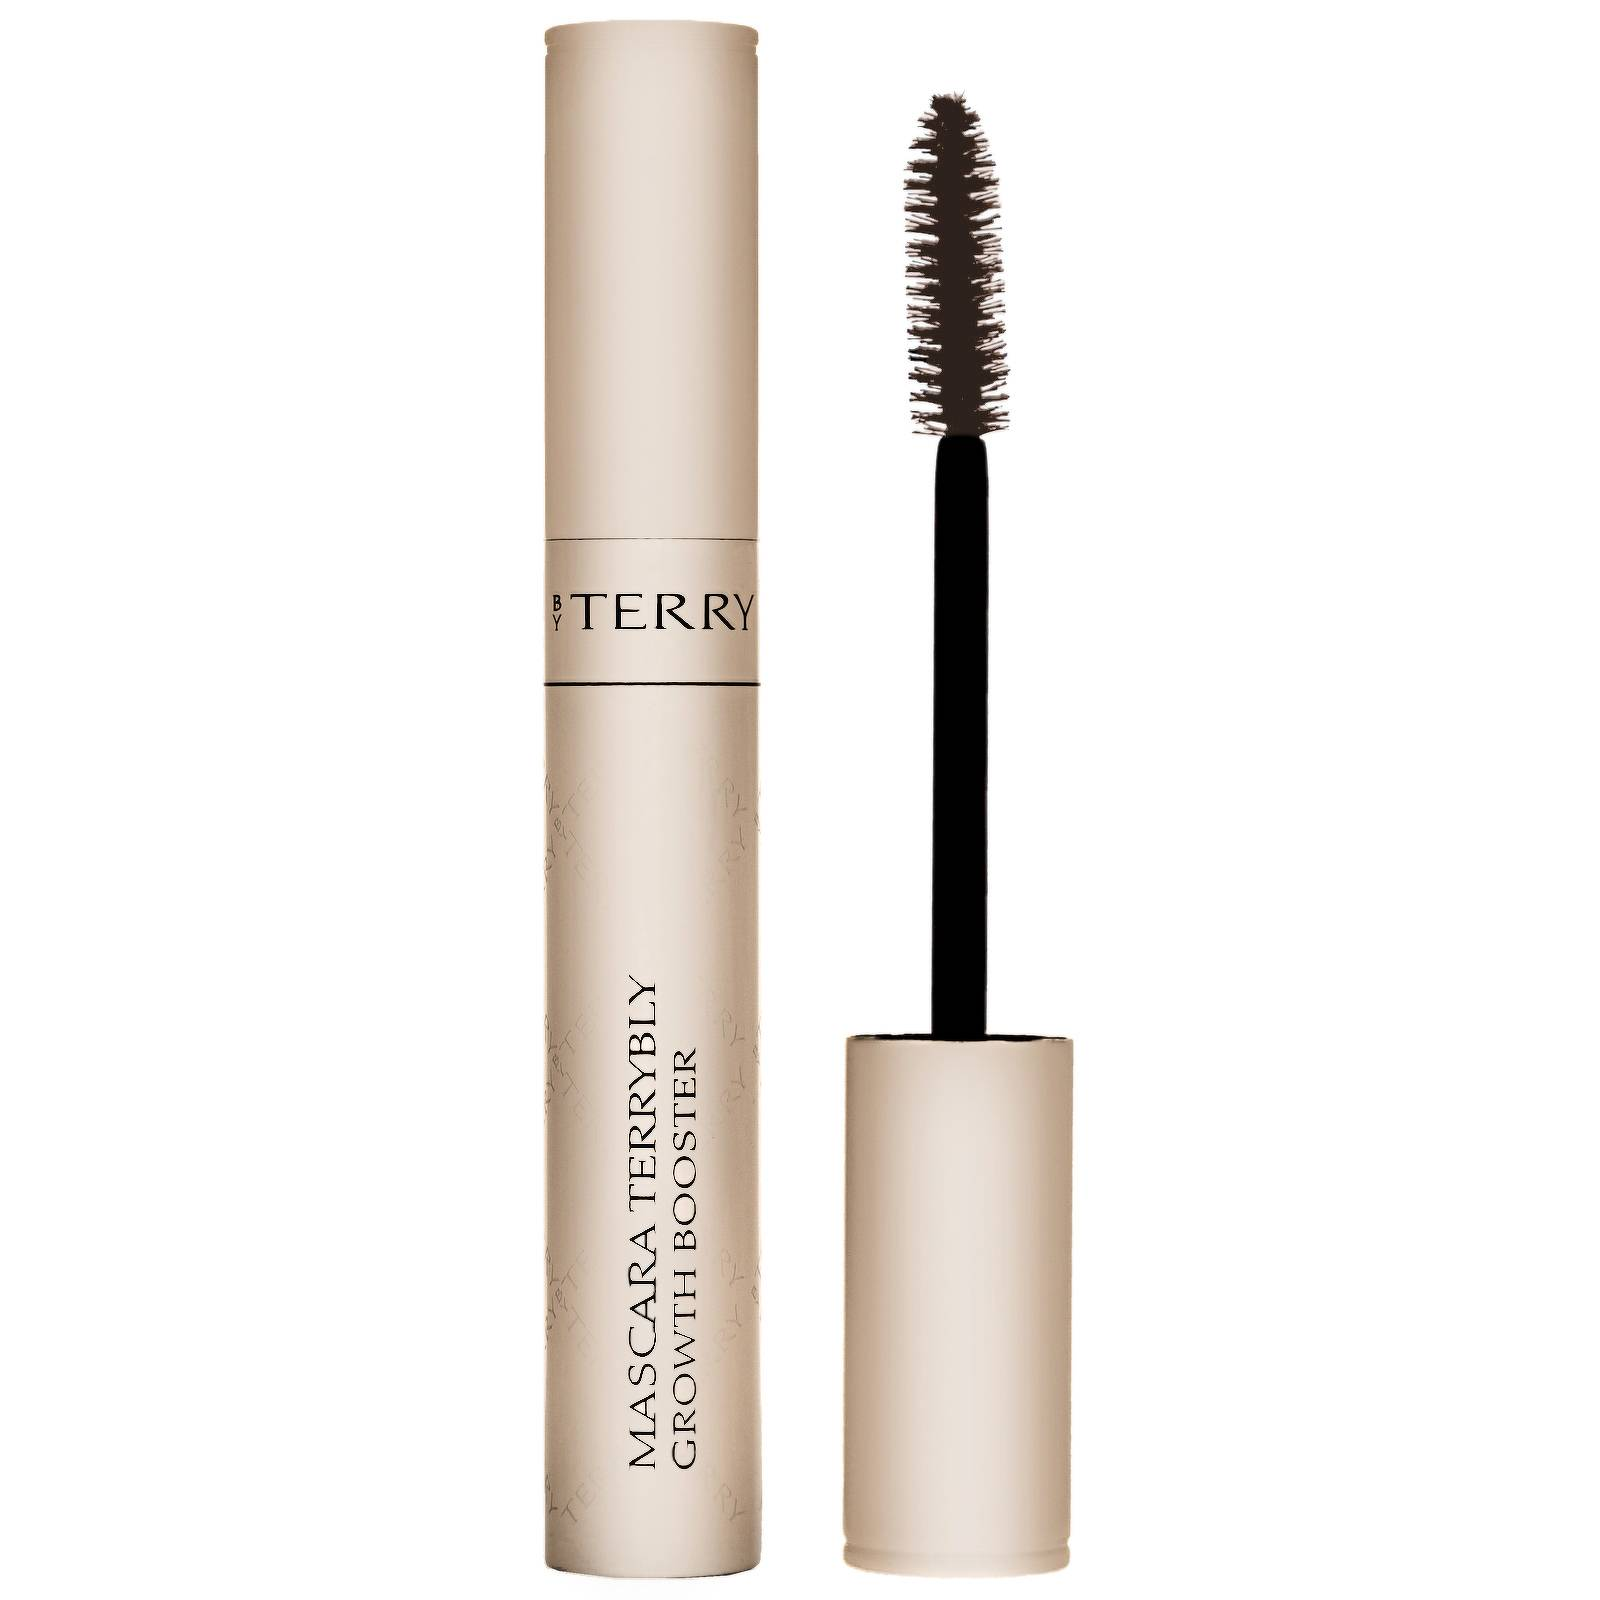 By Terry Mascara Terrybly: Growth Booster Mascara No 2 Moka Brown 8ml